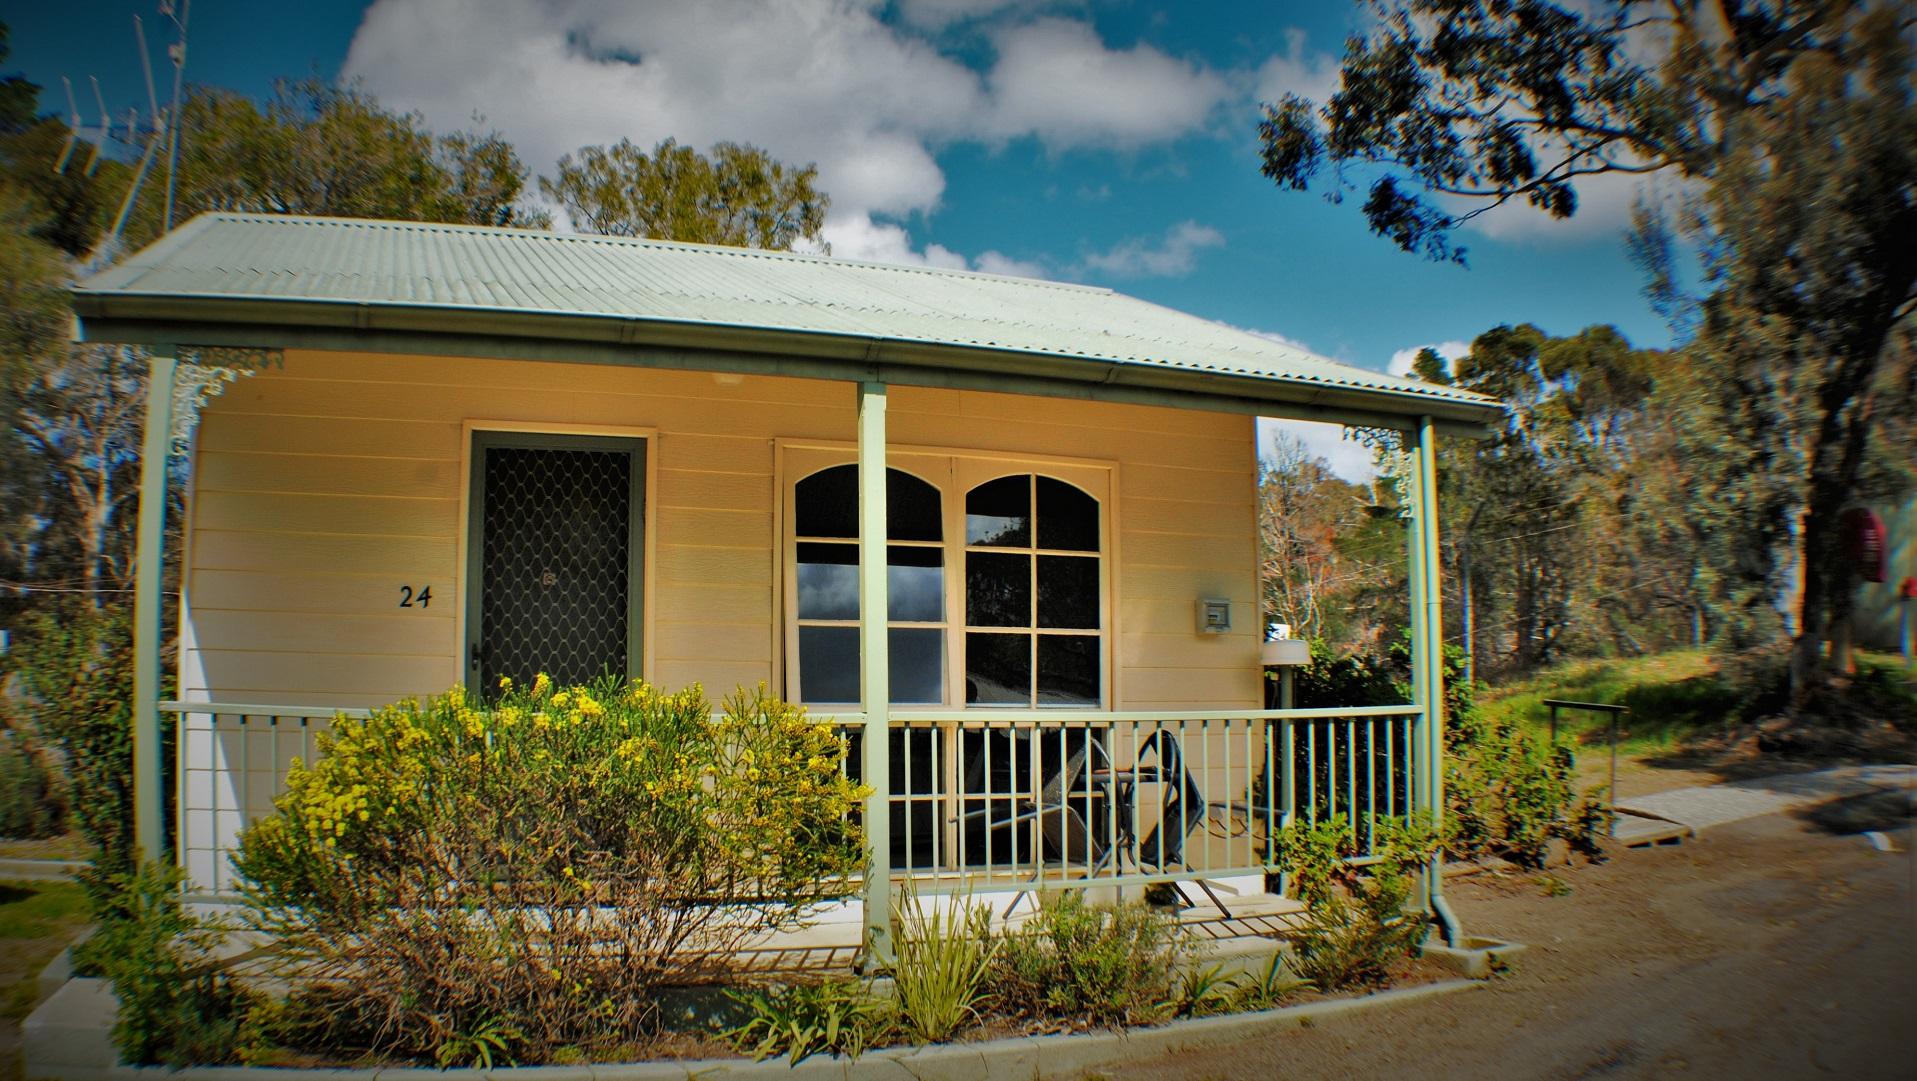 Welcome to Castlemaine, Maldon & Surrounds | Castlemaine